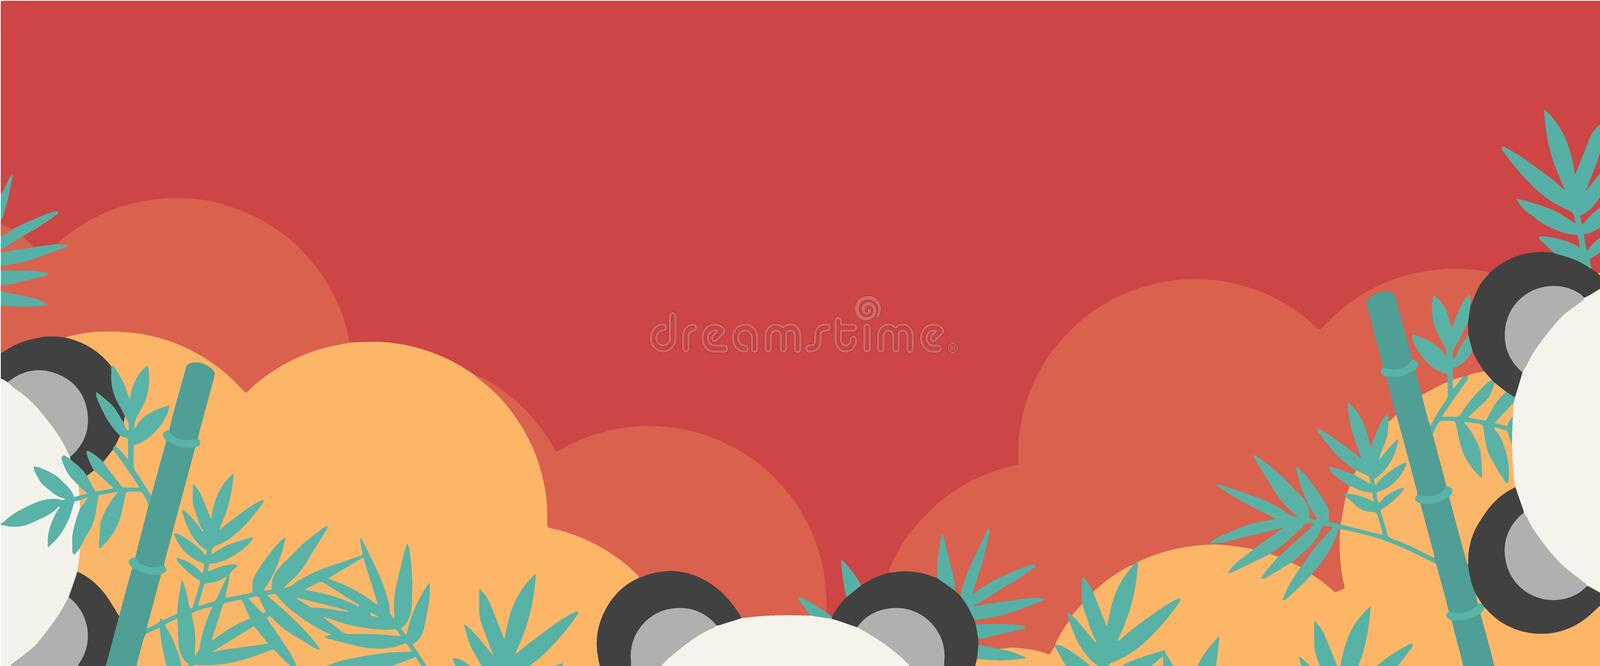 Asia style vector web banner with copy space, panda ears, bamboo, golden clouds on red background stock illustration